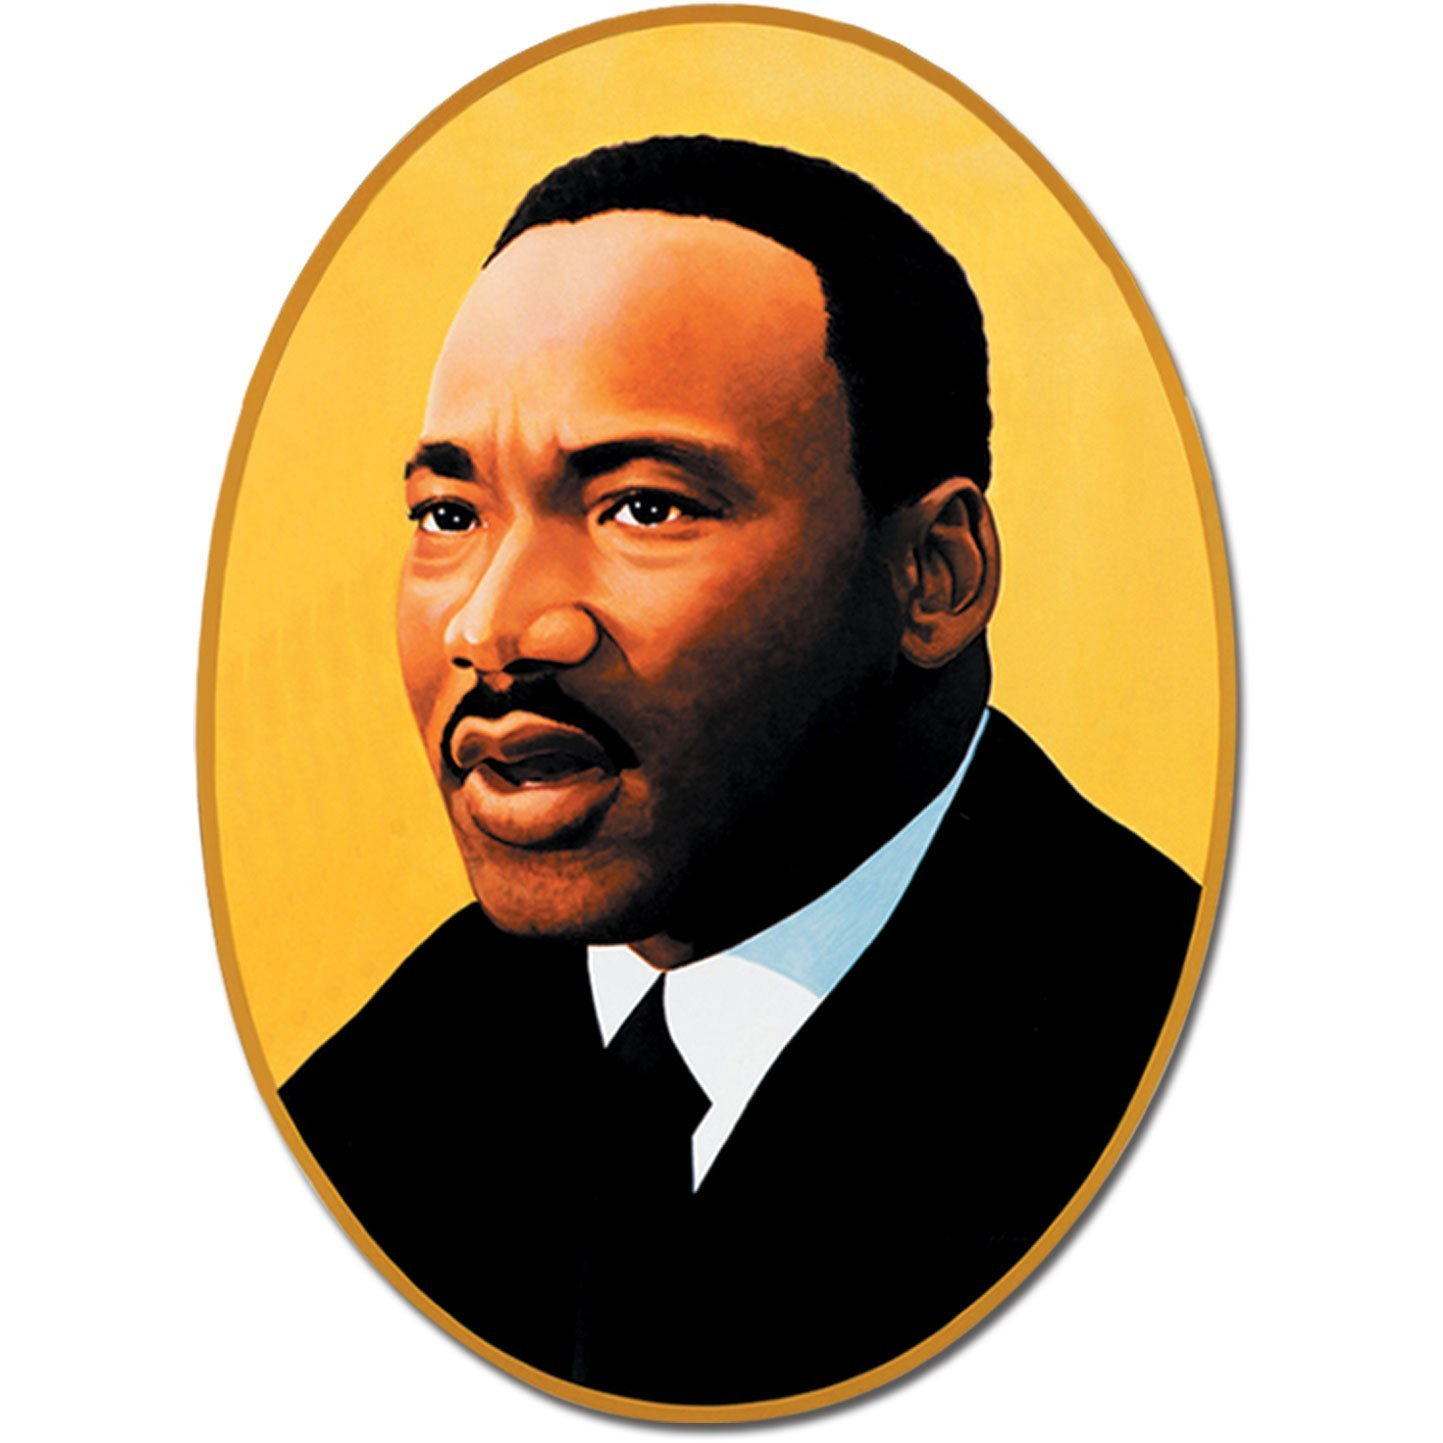 Getdrawings com cliparts mlk. Martin luther clipart icon freeuse